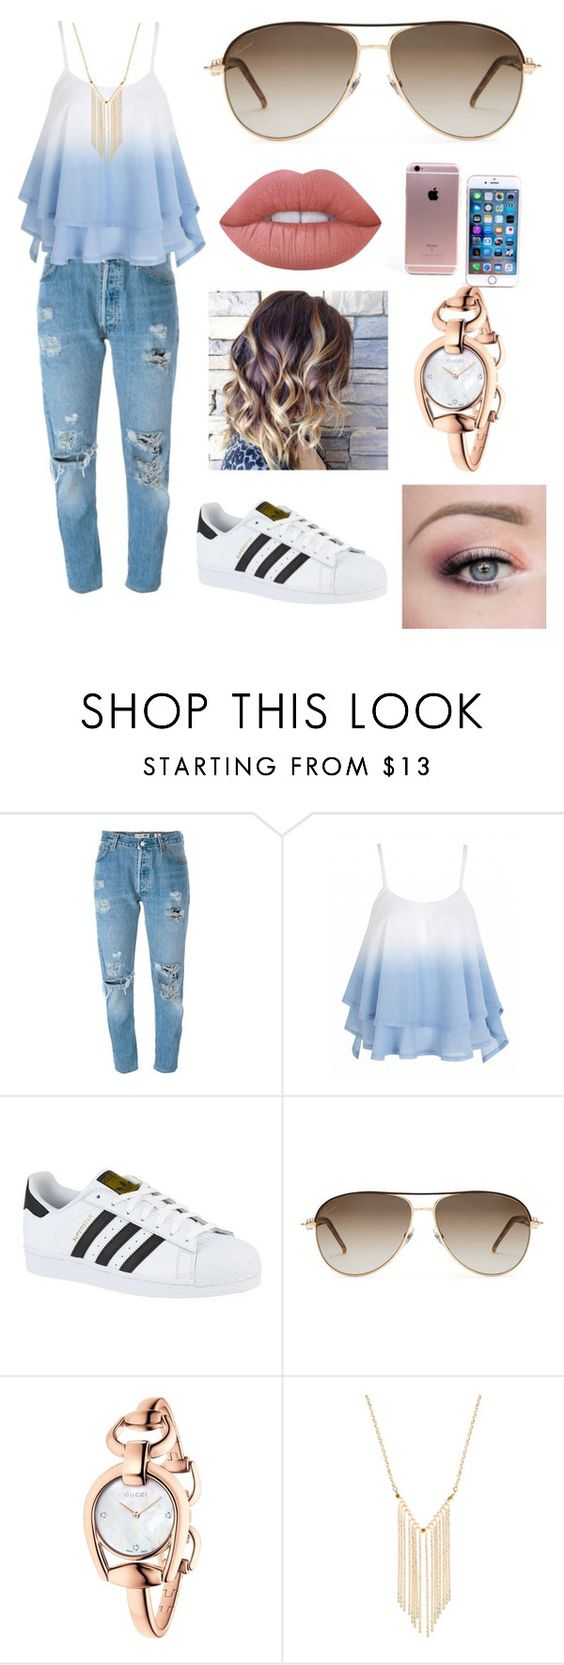 """""""My brother made this one """" by snuggle-bunny86 ❤ liked on Polyvore featuring Levi's, adidas, Gucci, Gemelli and Lime Crime"""